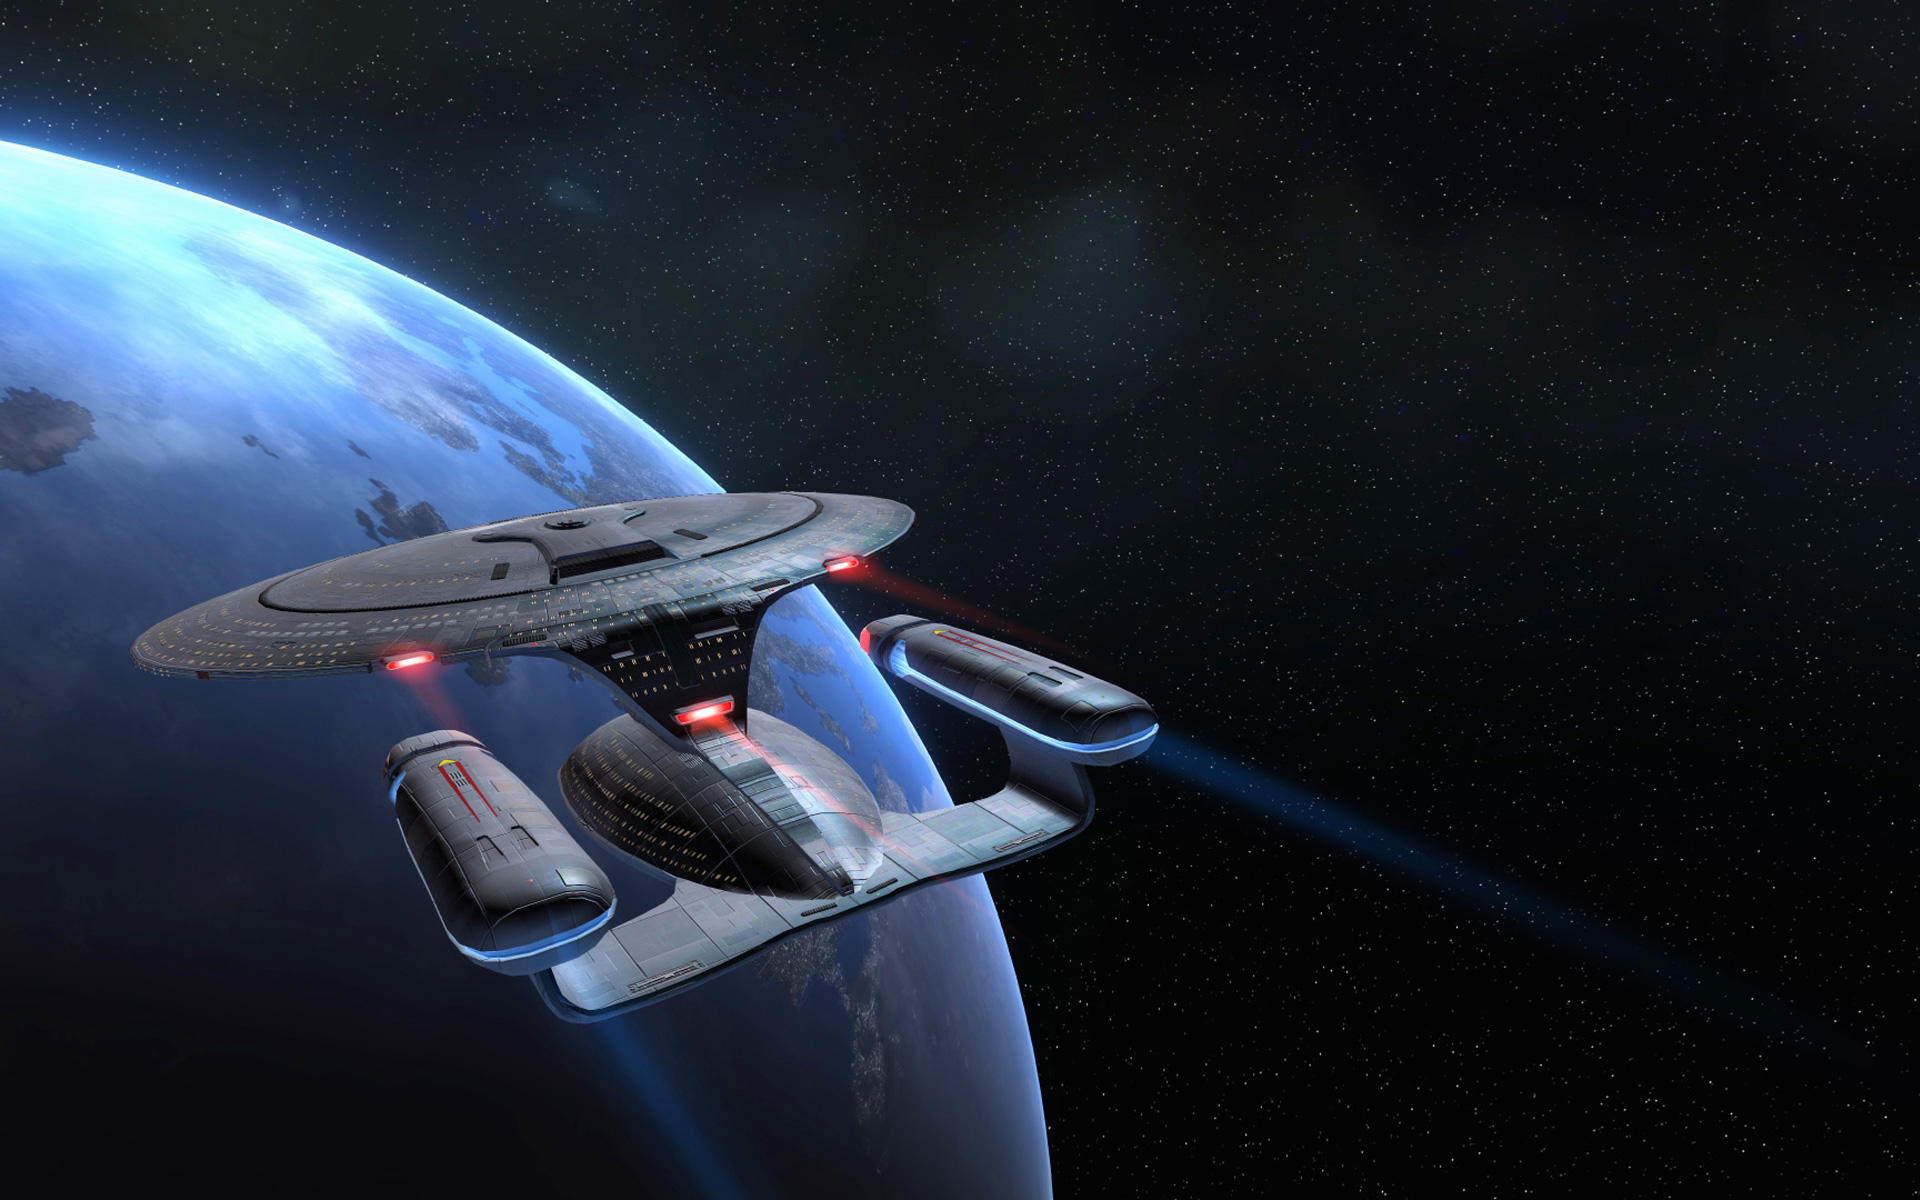 Star Trek Online Wallpaper in 1920x1200 1920x1200